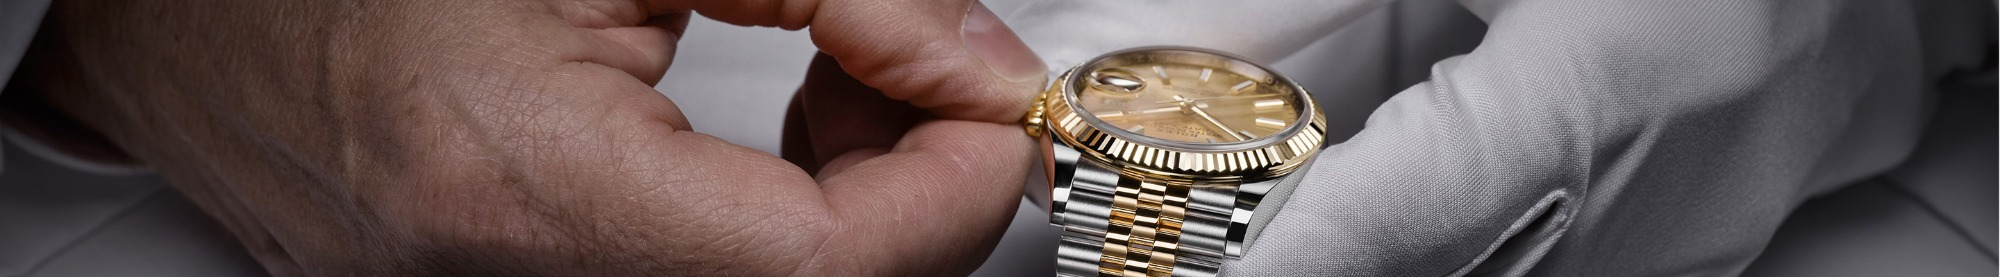 servicing-your-rolex-cover